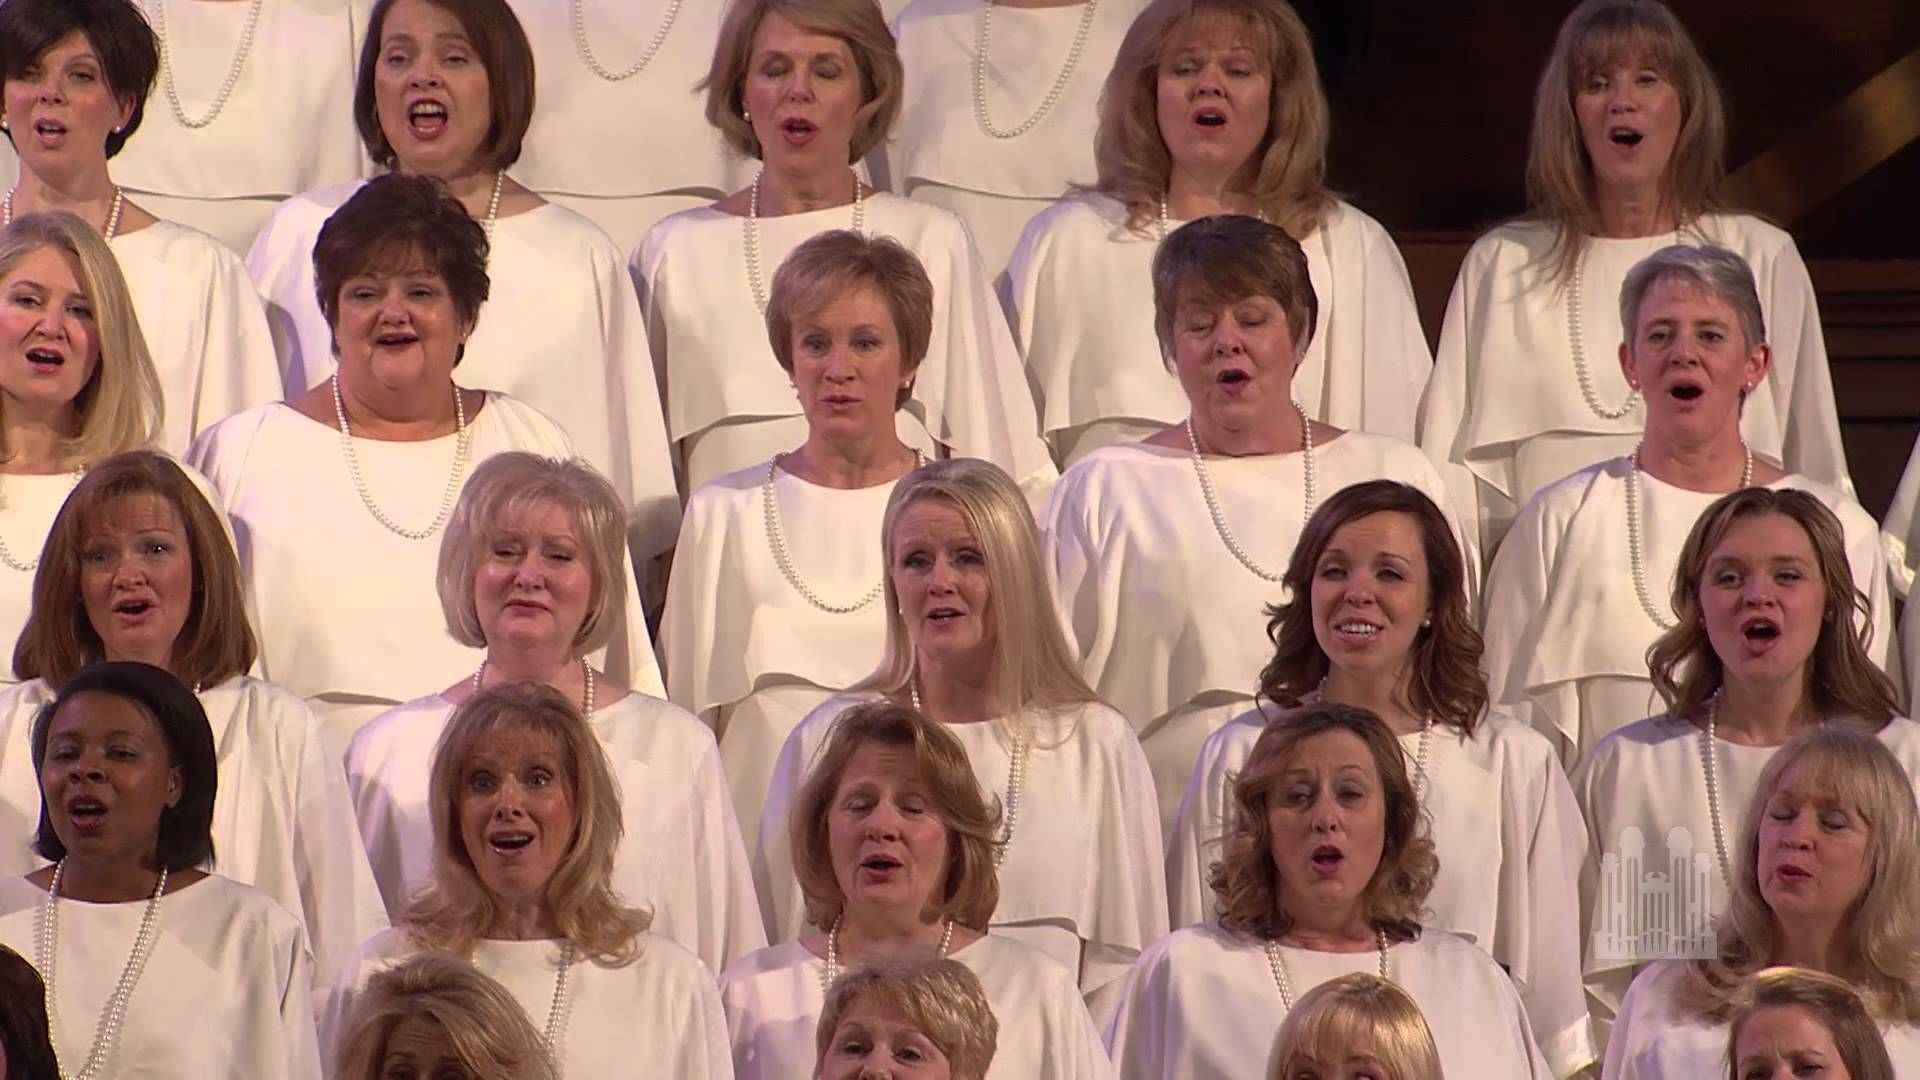 You\'ll Never Walk Alone - Mormon Tabernacle Choir More LDS Gems at ...